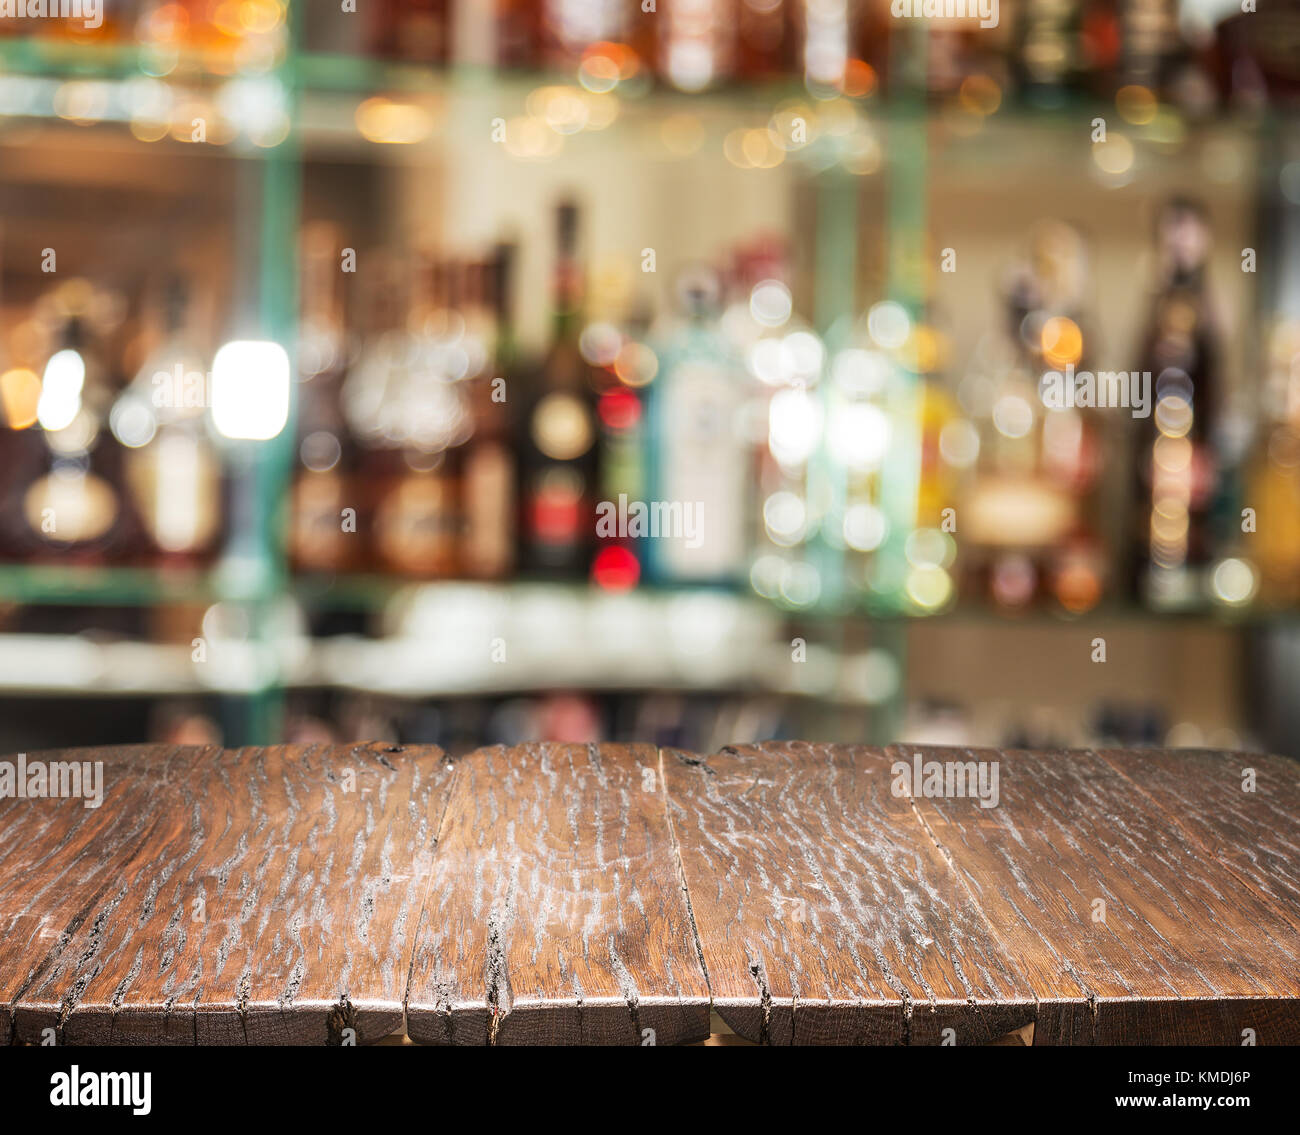 Wooden countertop and blurred bar shelves at the background